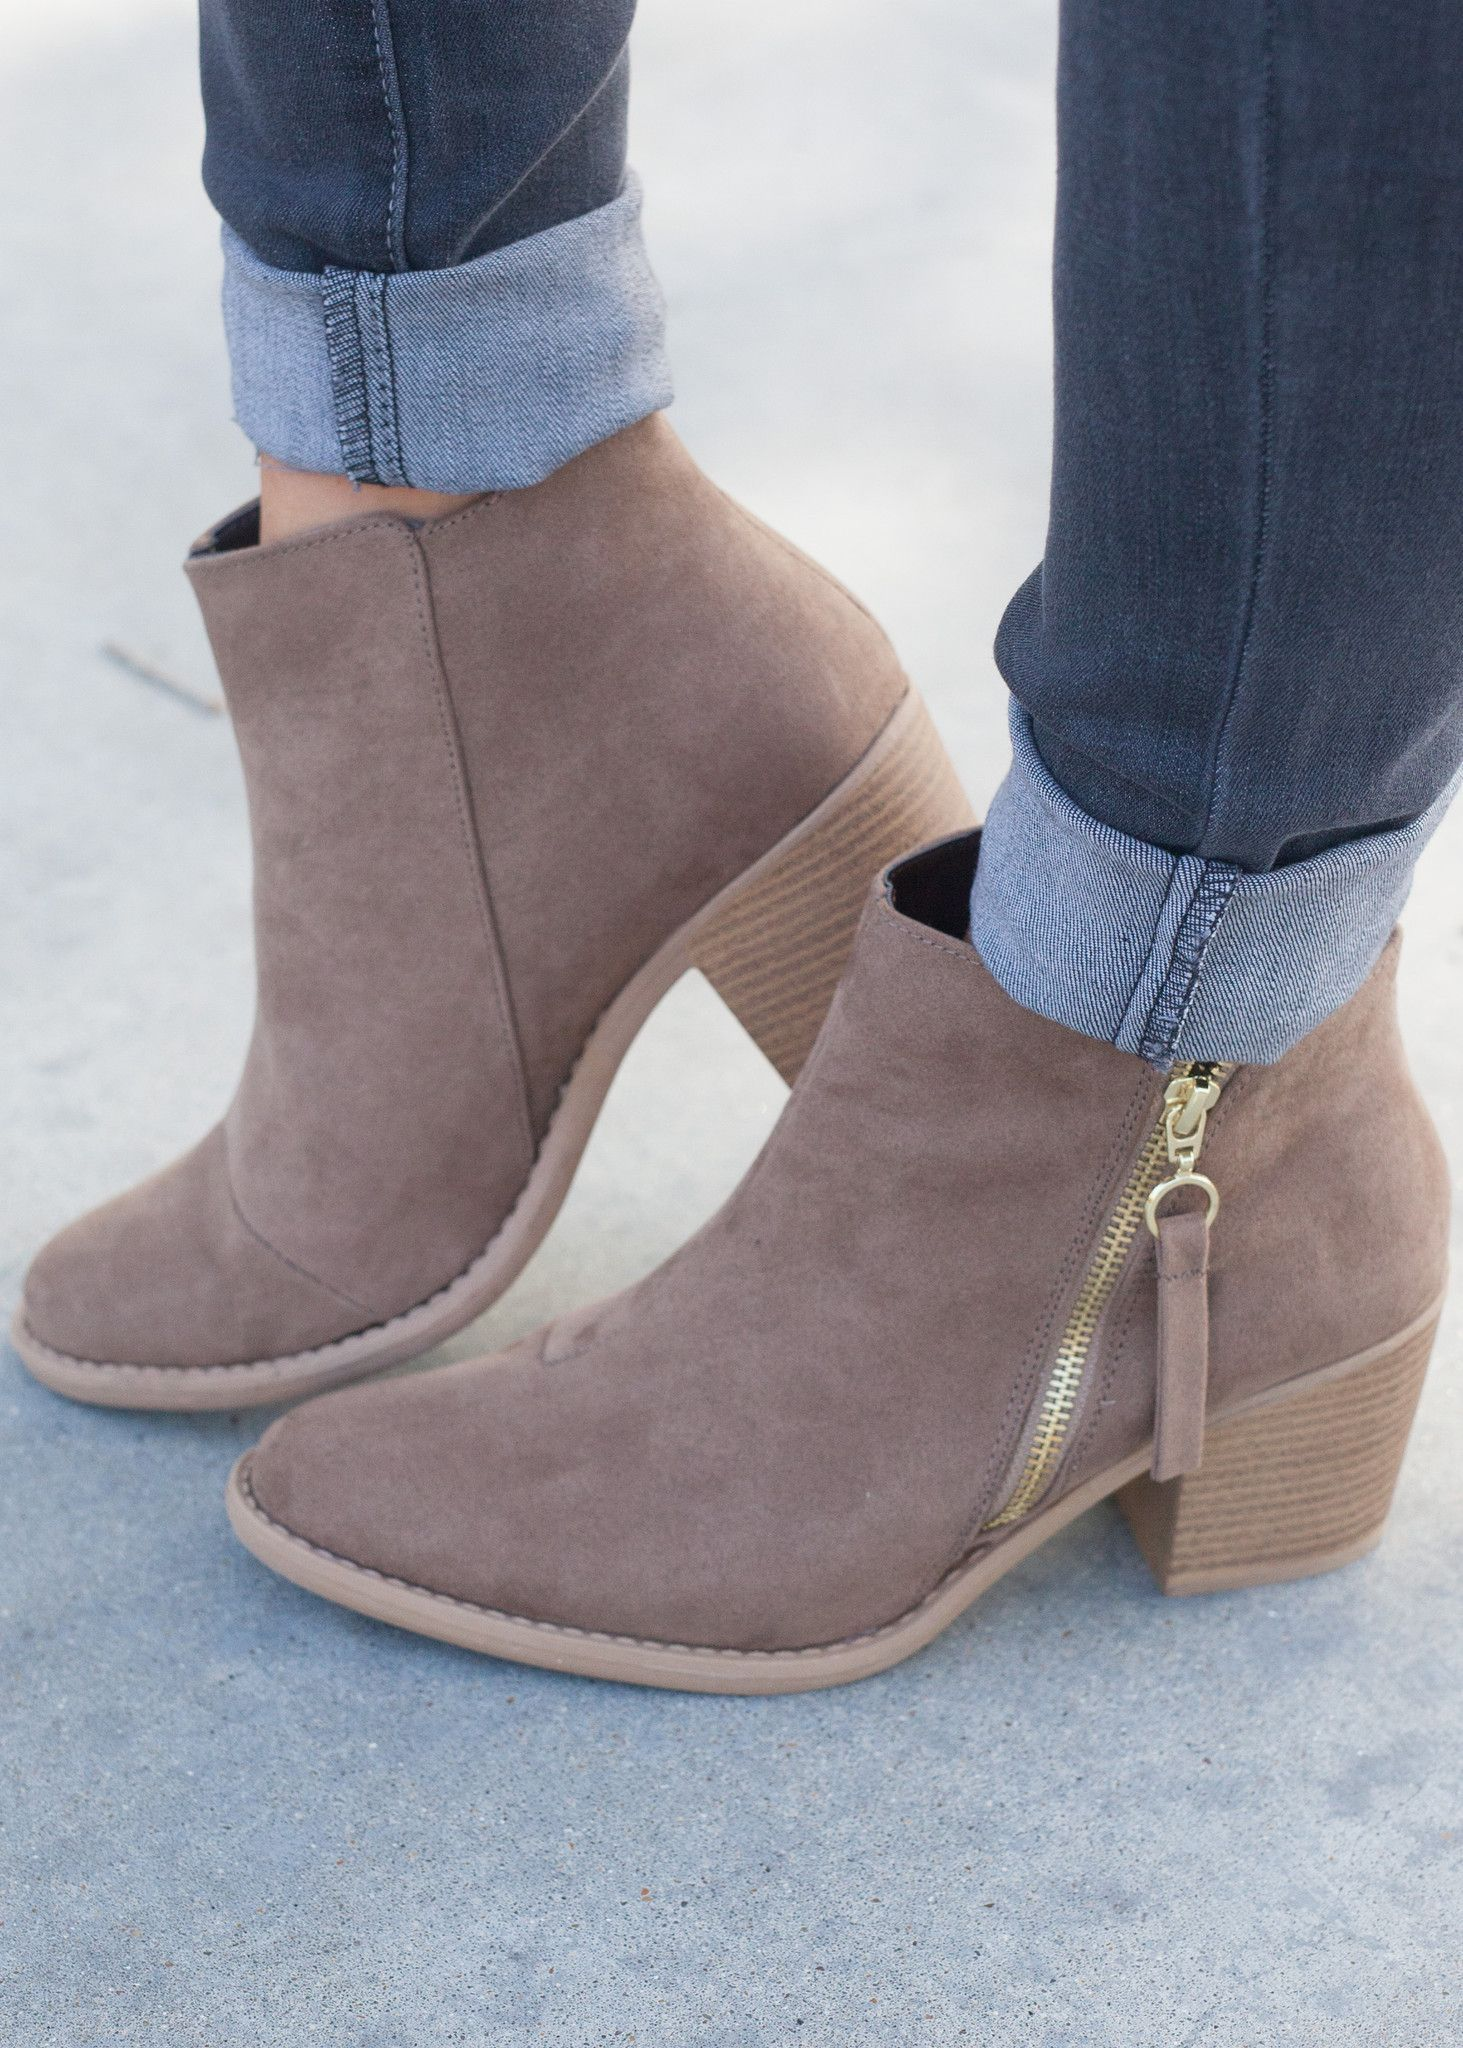 Western Mid Calf Booties Women's Autumn Winter Chunky Heel Round Toe Faux Suede Ankle Boots